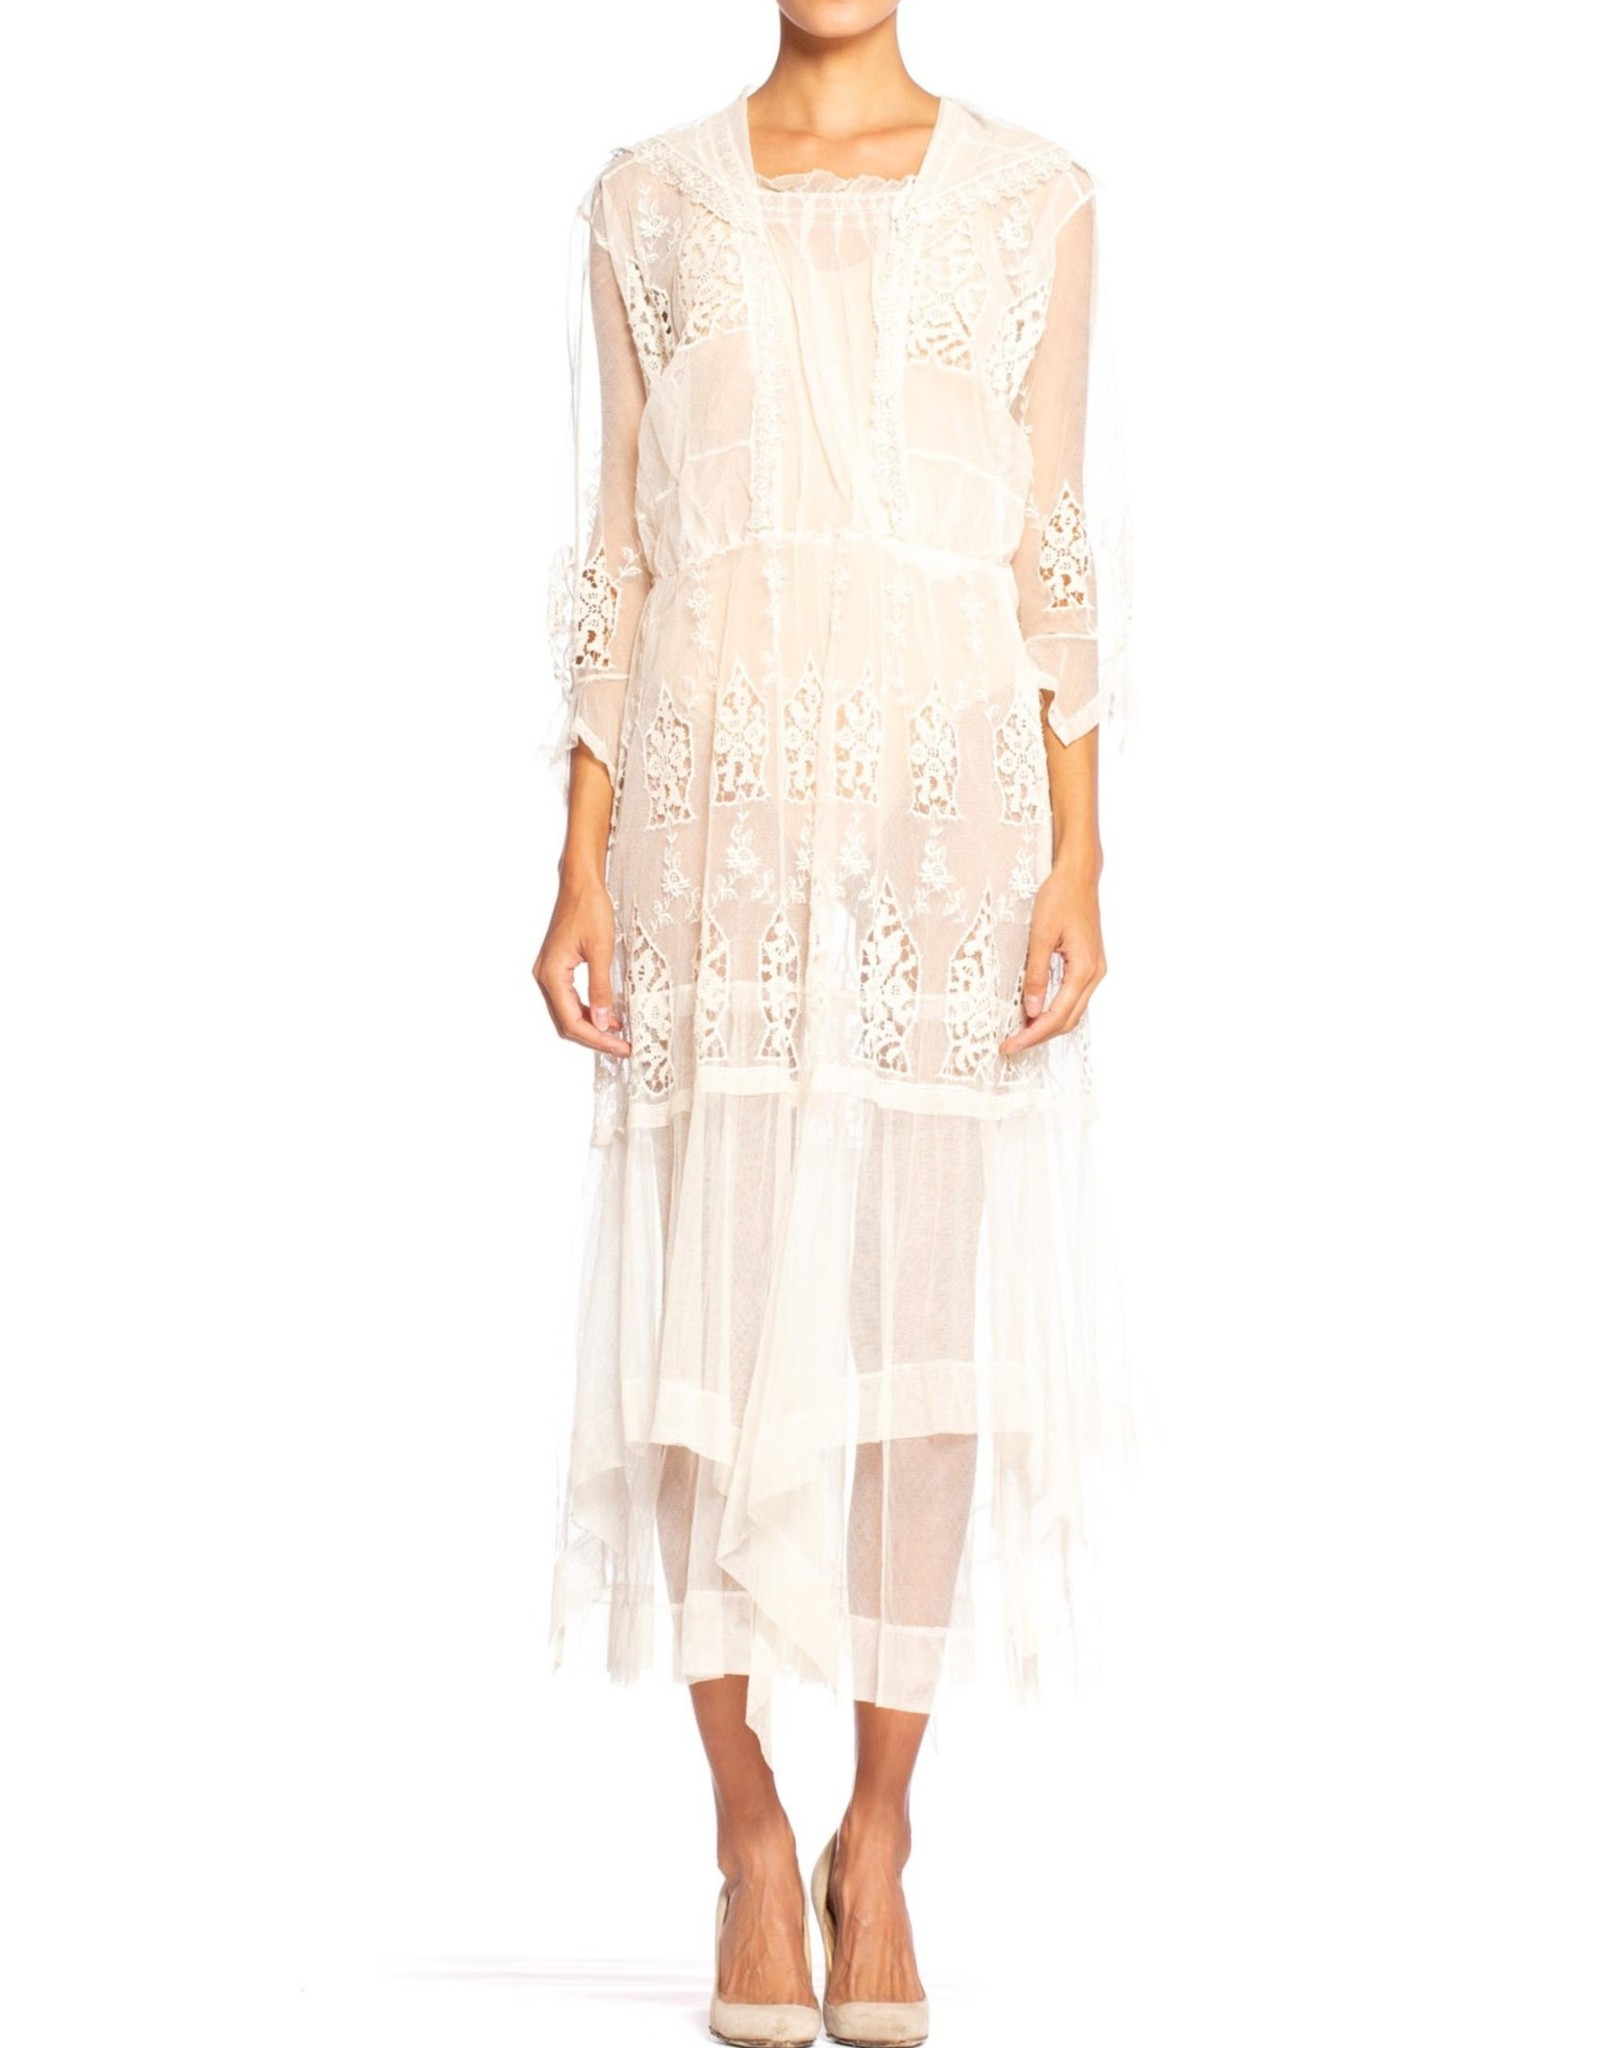 Wyld Blue Vintage Edwardian Cream Embroidered Tulle & Lace Dress with Sheer Sleeves (Antique)